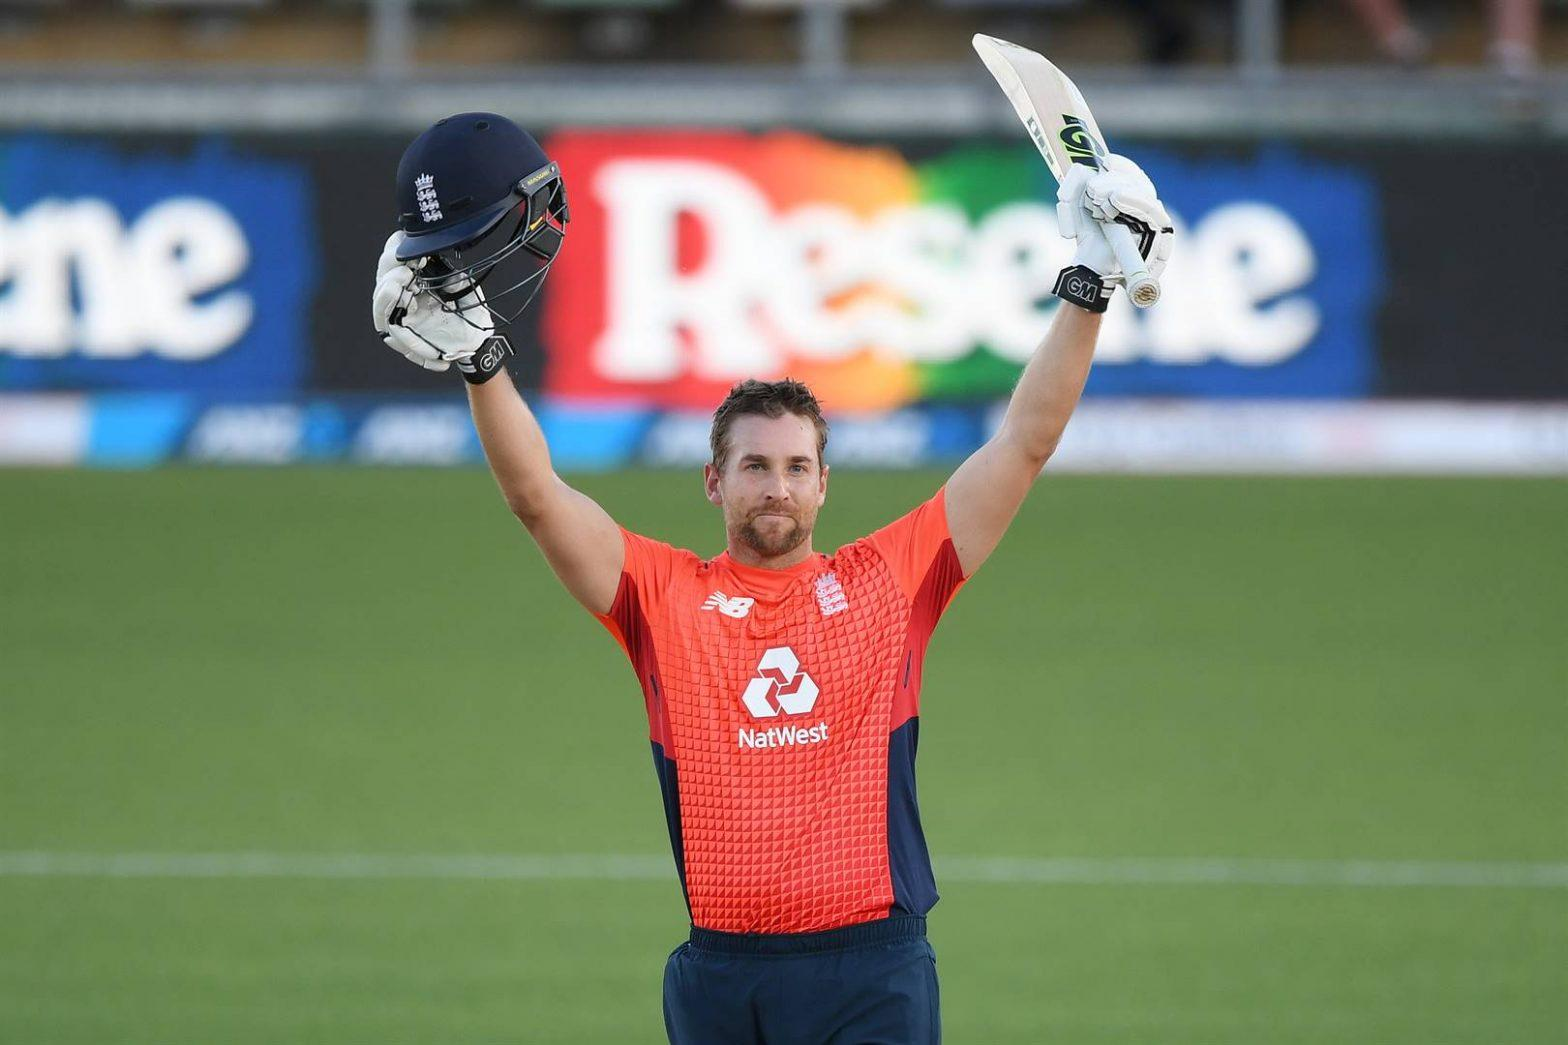 England's Dawid Malan achieves highest-ever rating points in T20I_40.1